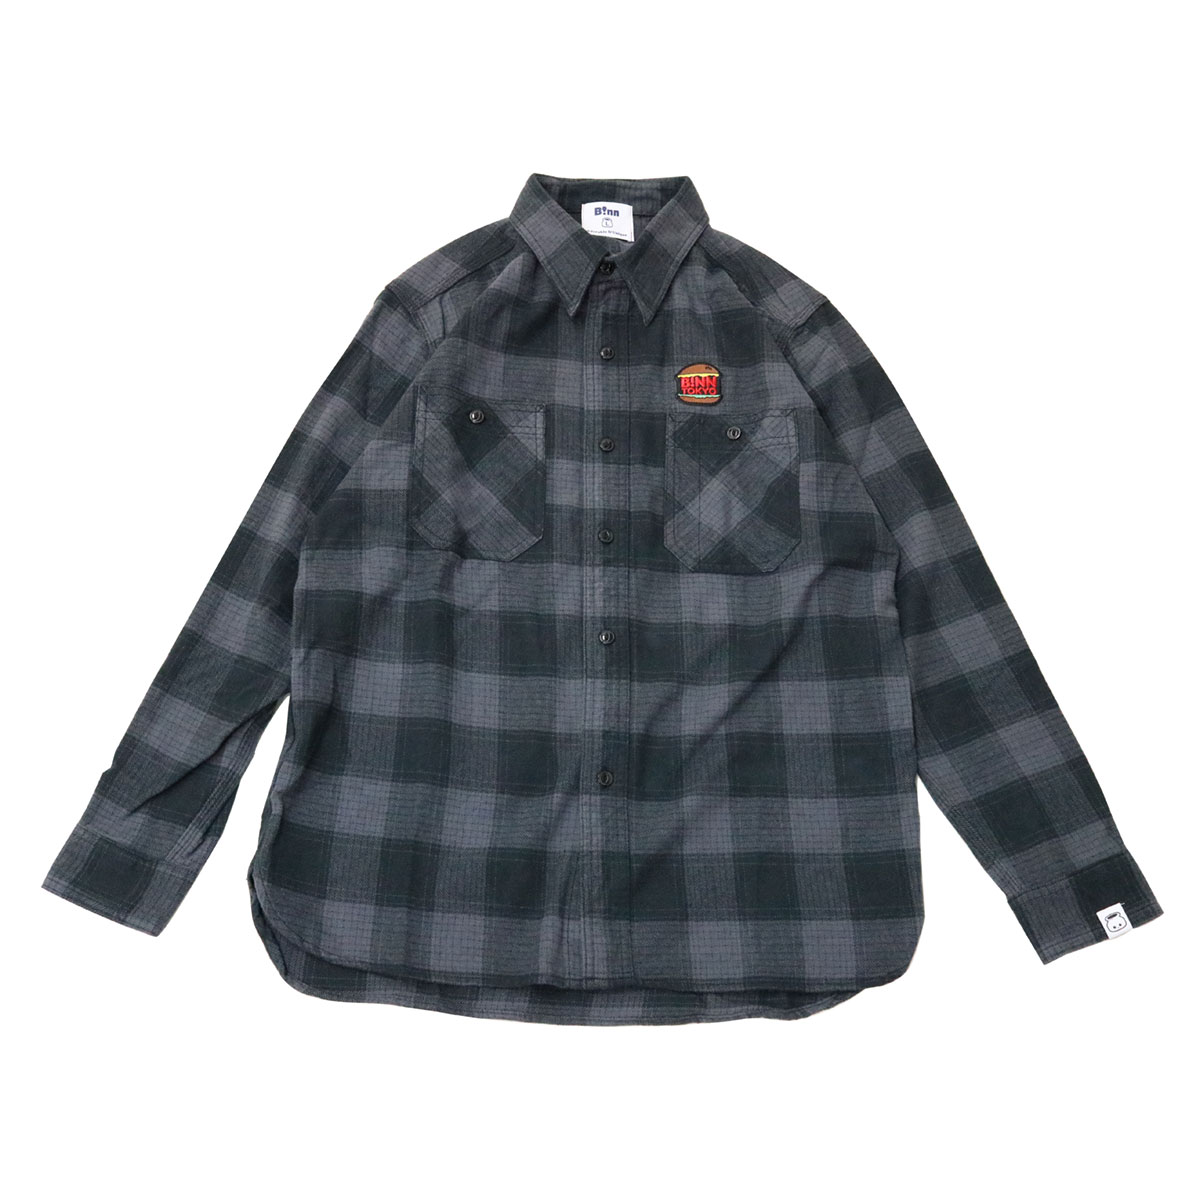 Burger Flannel Shirt (Gray x Black)